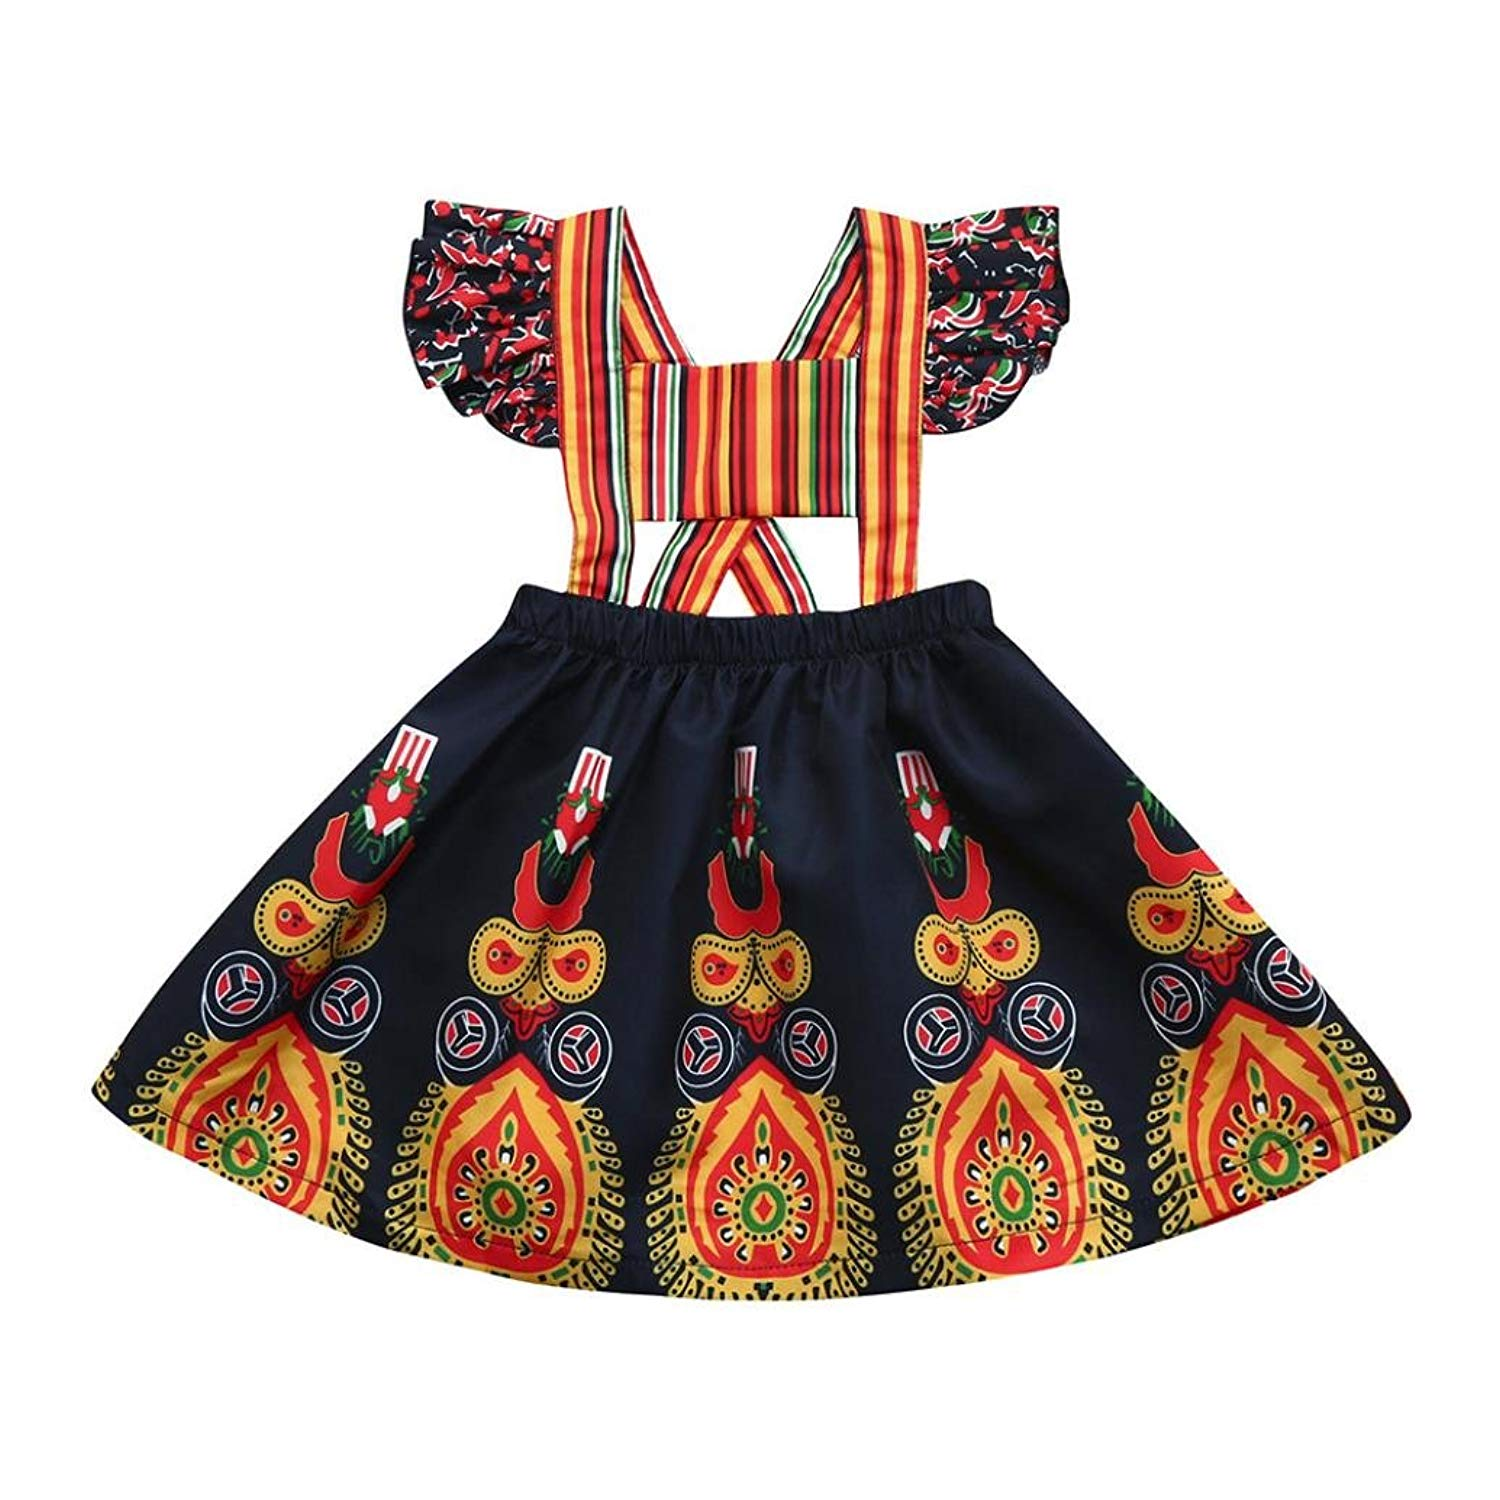 Hibro Baby Girls Princess Dress Backless Party Pageant Boho Floral Dresses Skirts for Toddler Kids